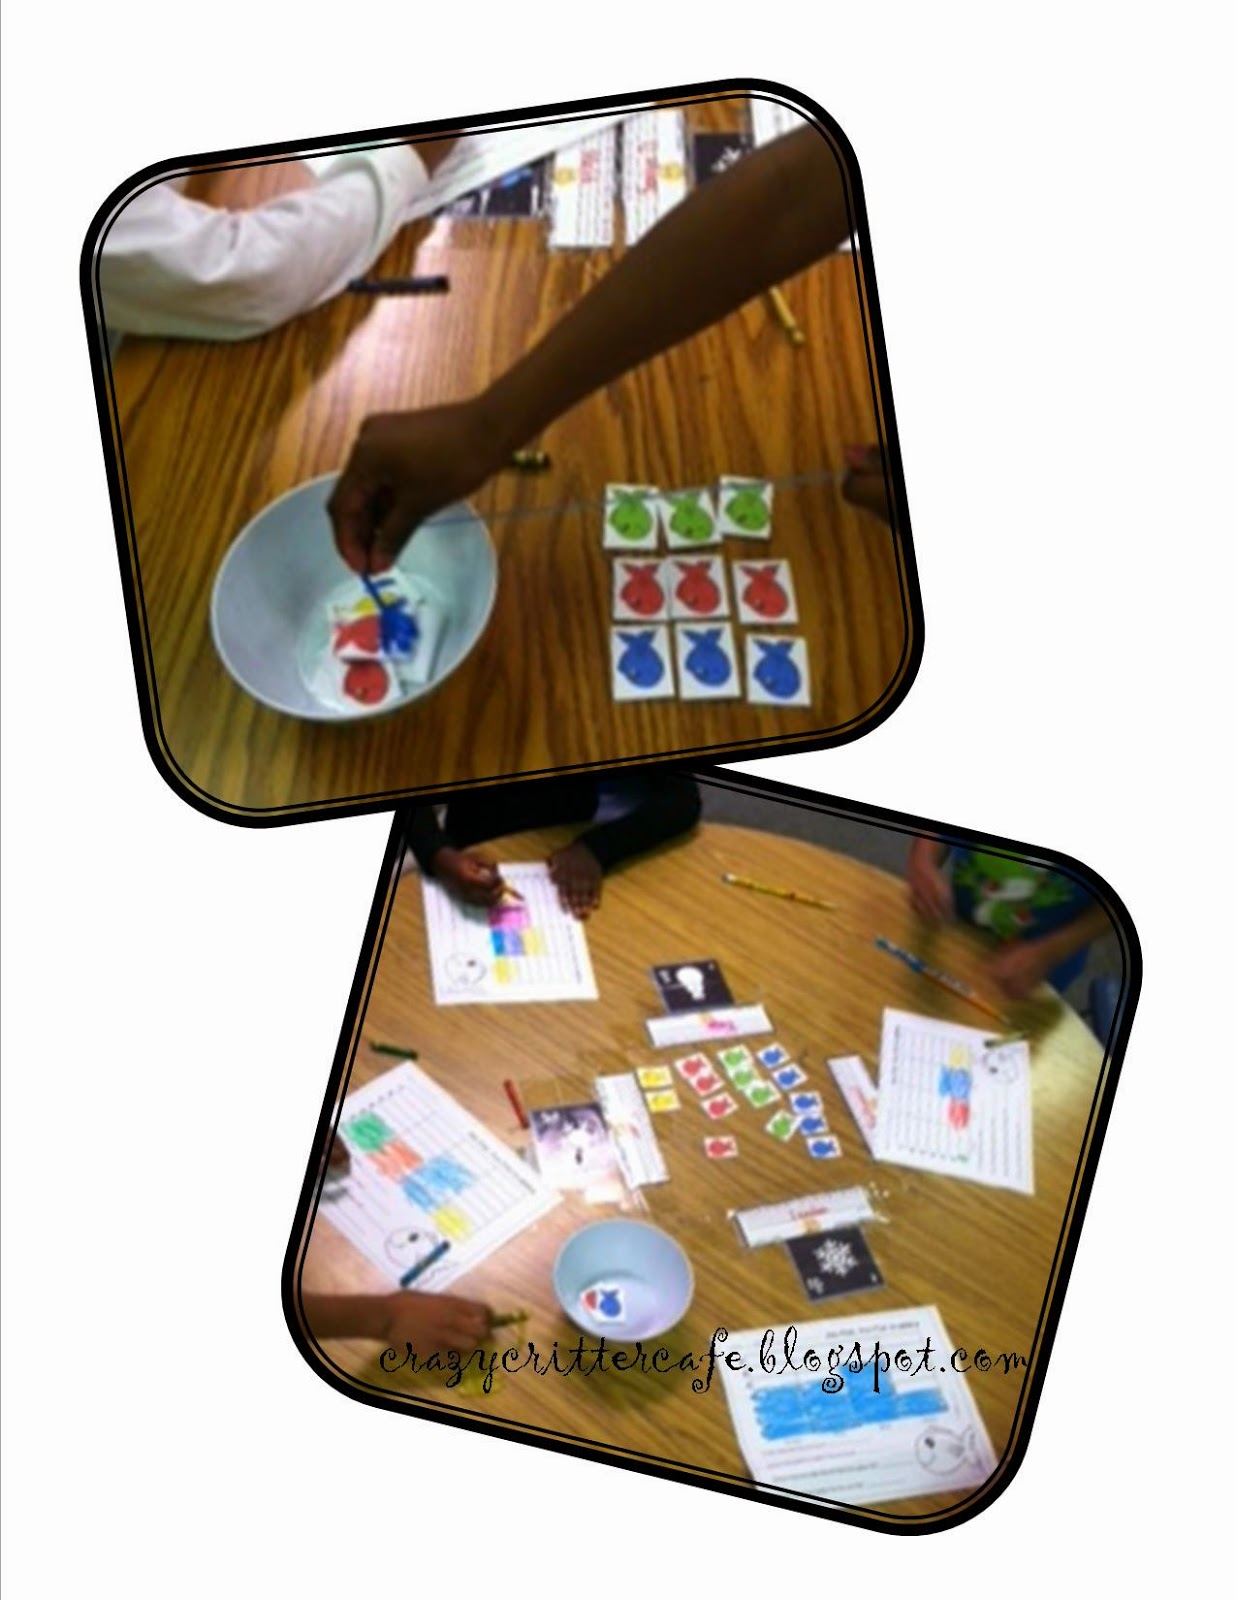 http://crazycrittercafe.blogspot.com/2014/03/go-fish-graphing-with-slappy-hands.html